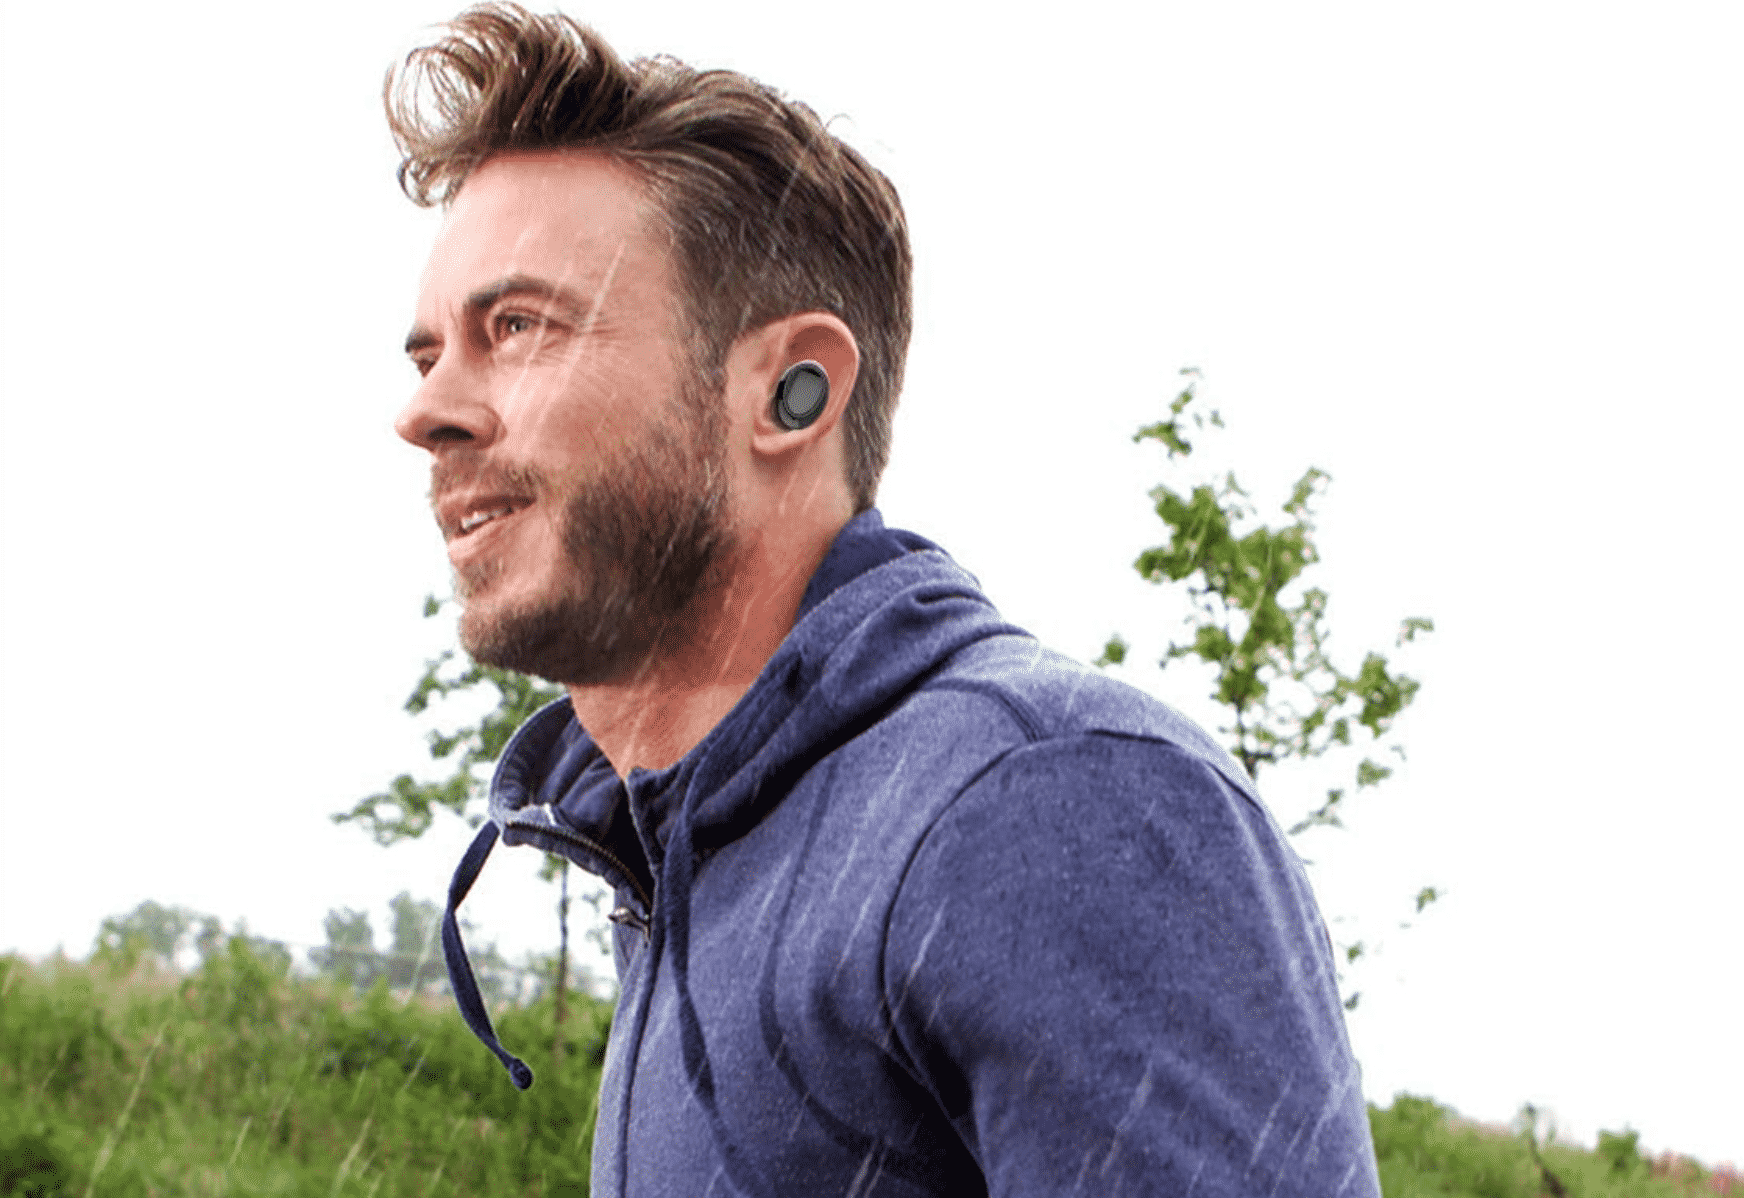 Buy These True Wireless Earbuds for Just $16